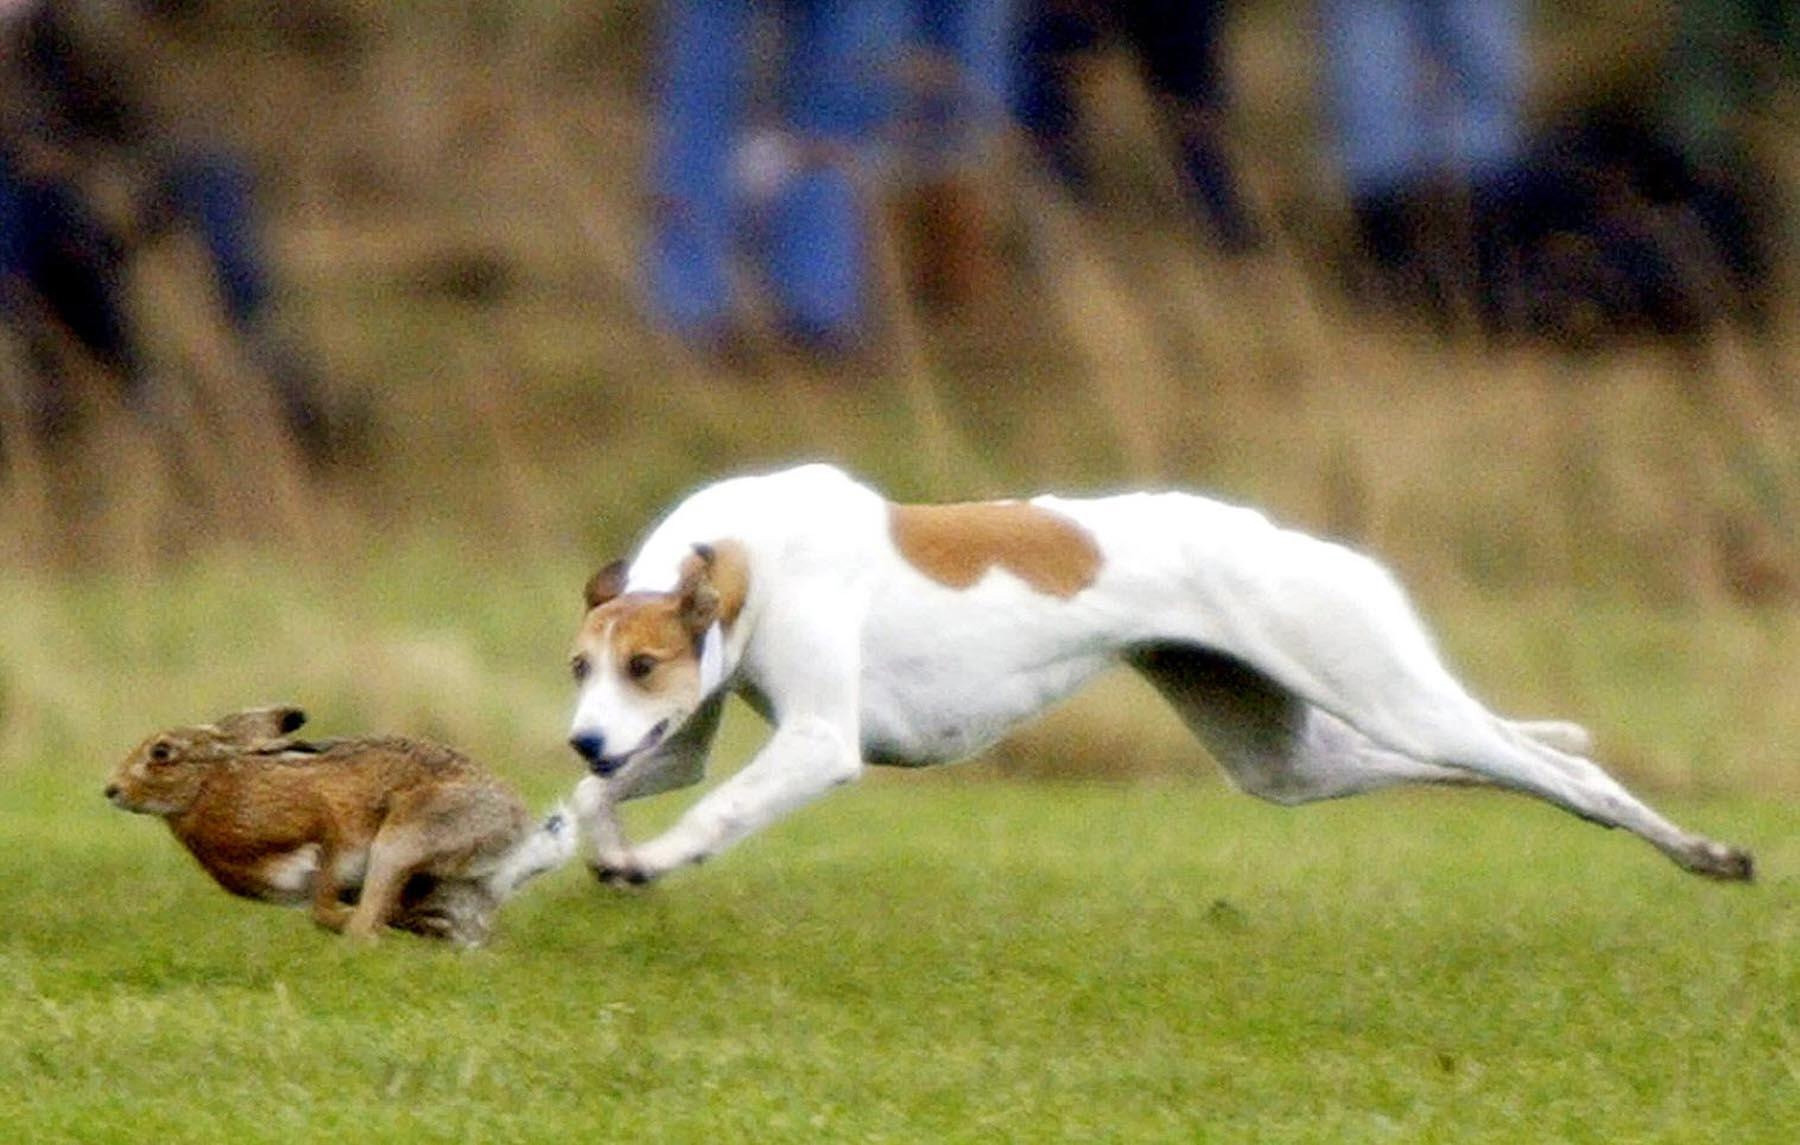 The charges include being involved in hare coursing.